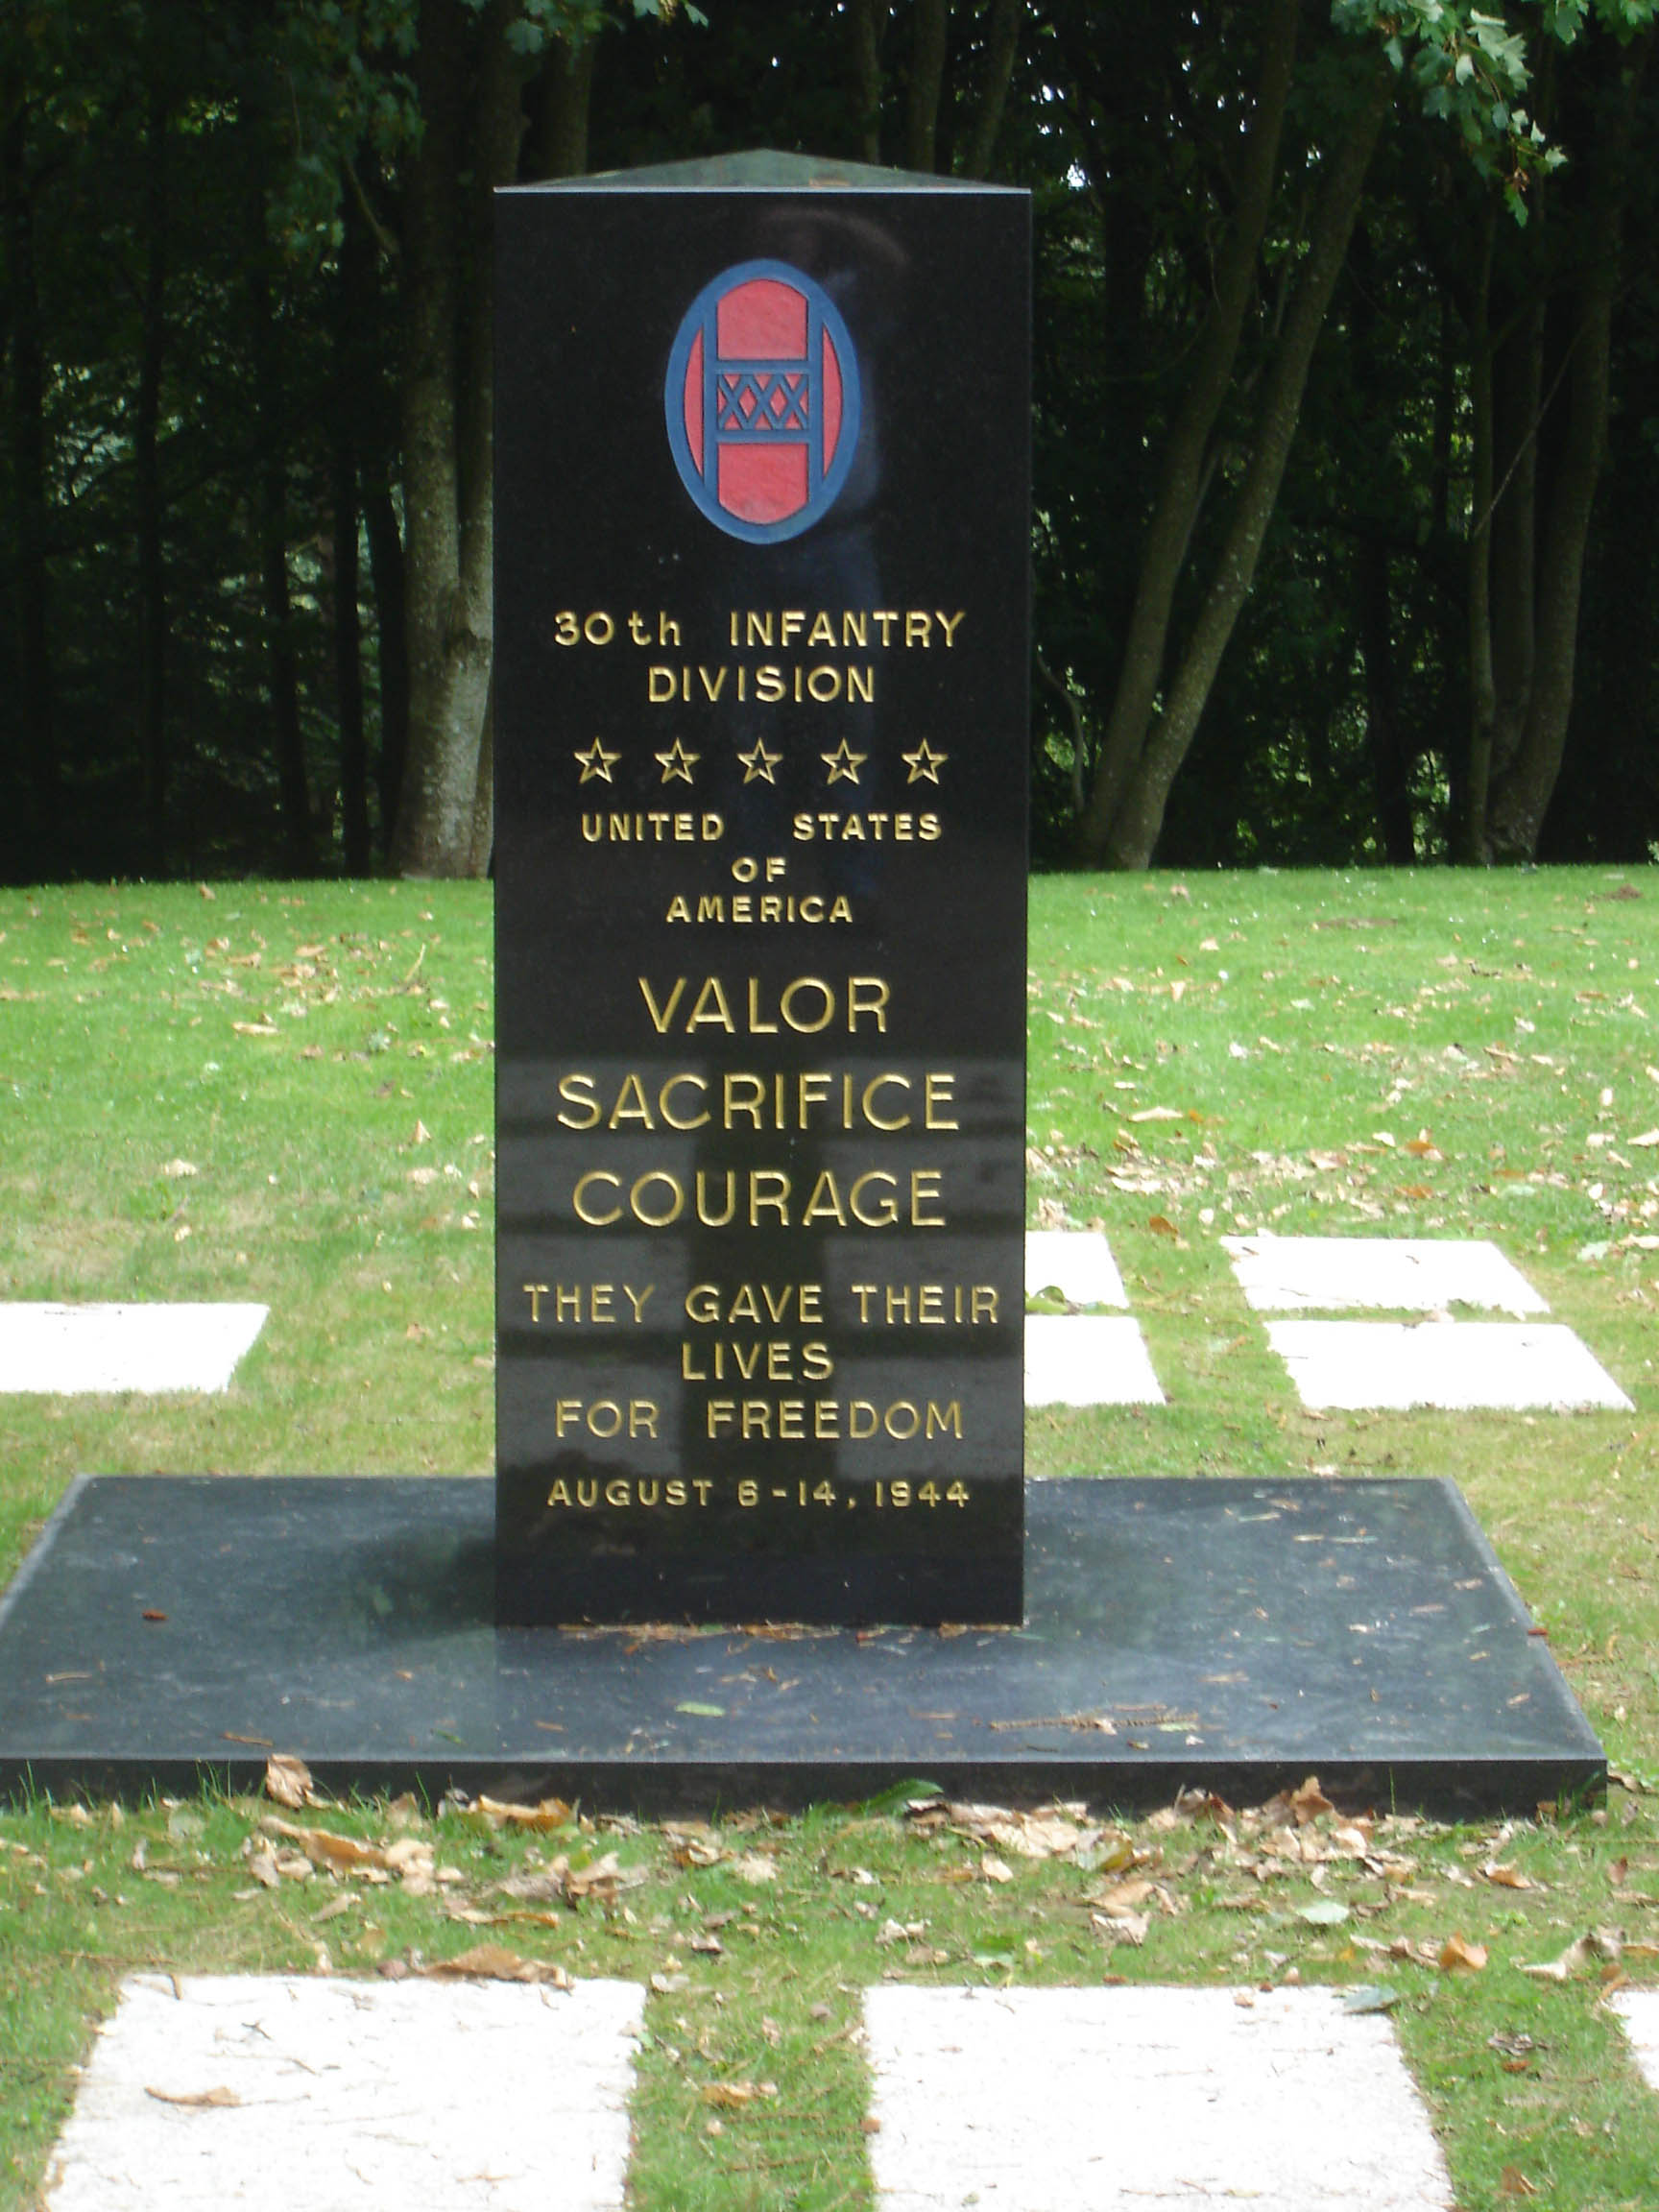 Visit to American Cemetery Normandy France-hill-314-mortain-web-copy.jpg